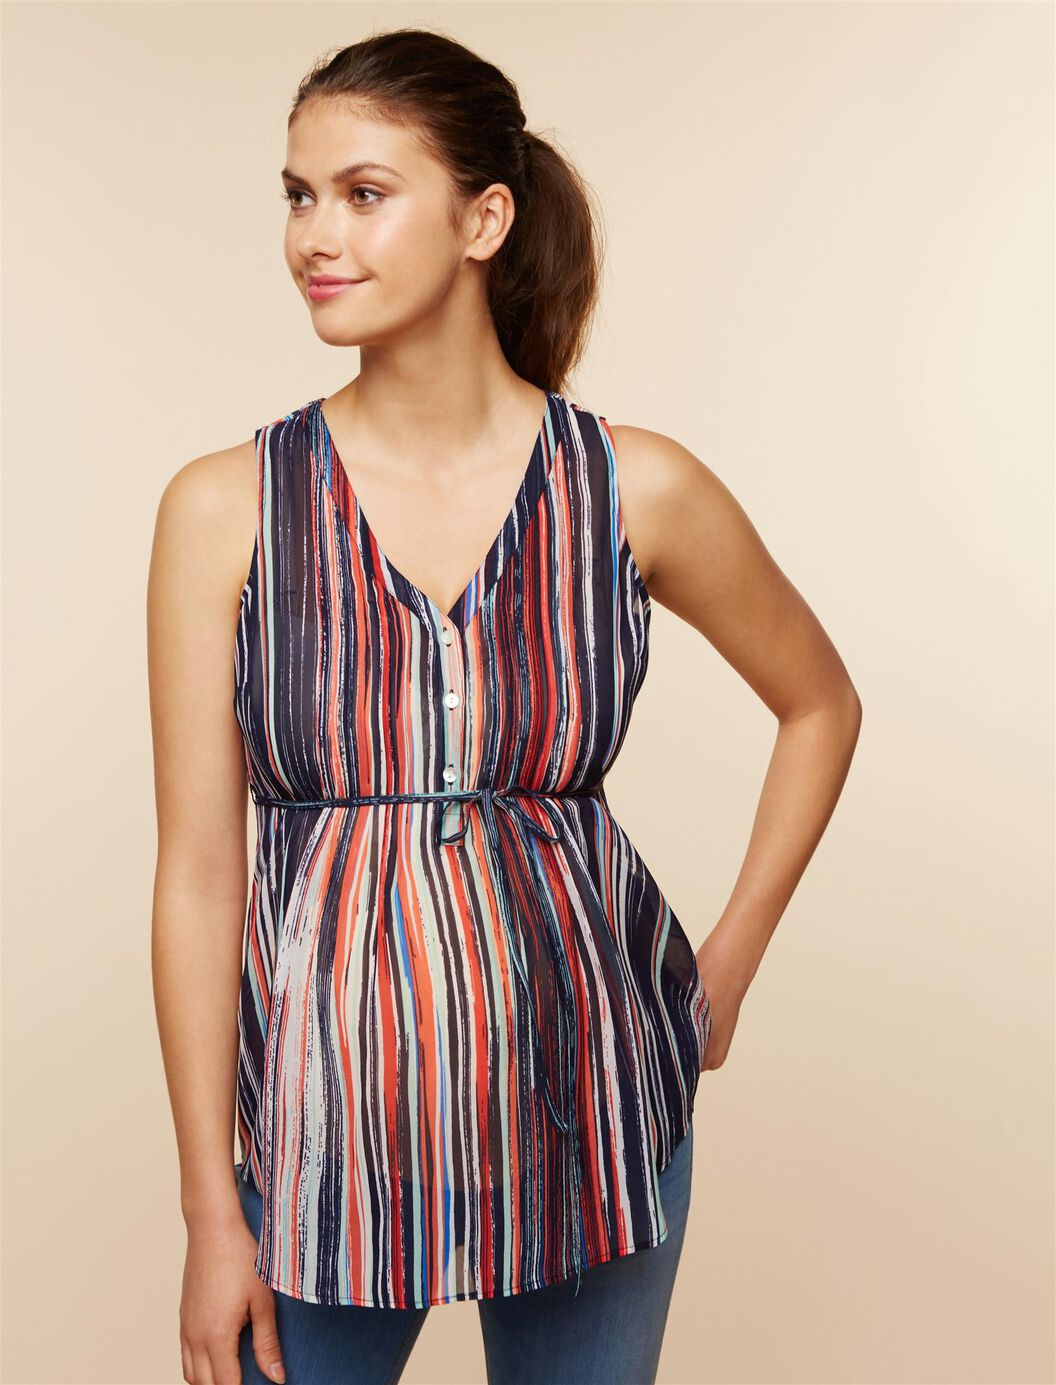 Pleated Maternity Blouse at Motherhood Maternity in Victor, NY   Tuggl